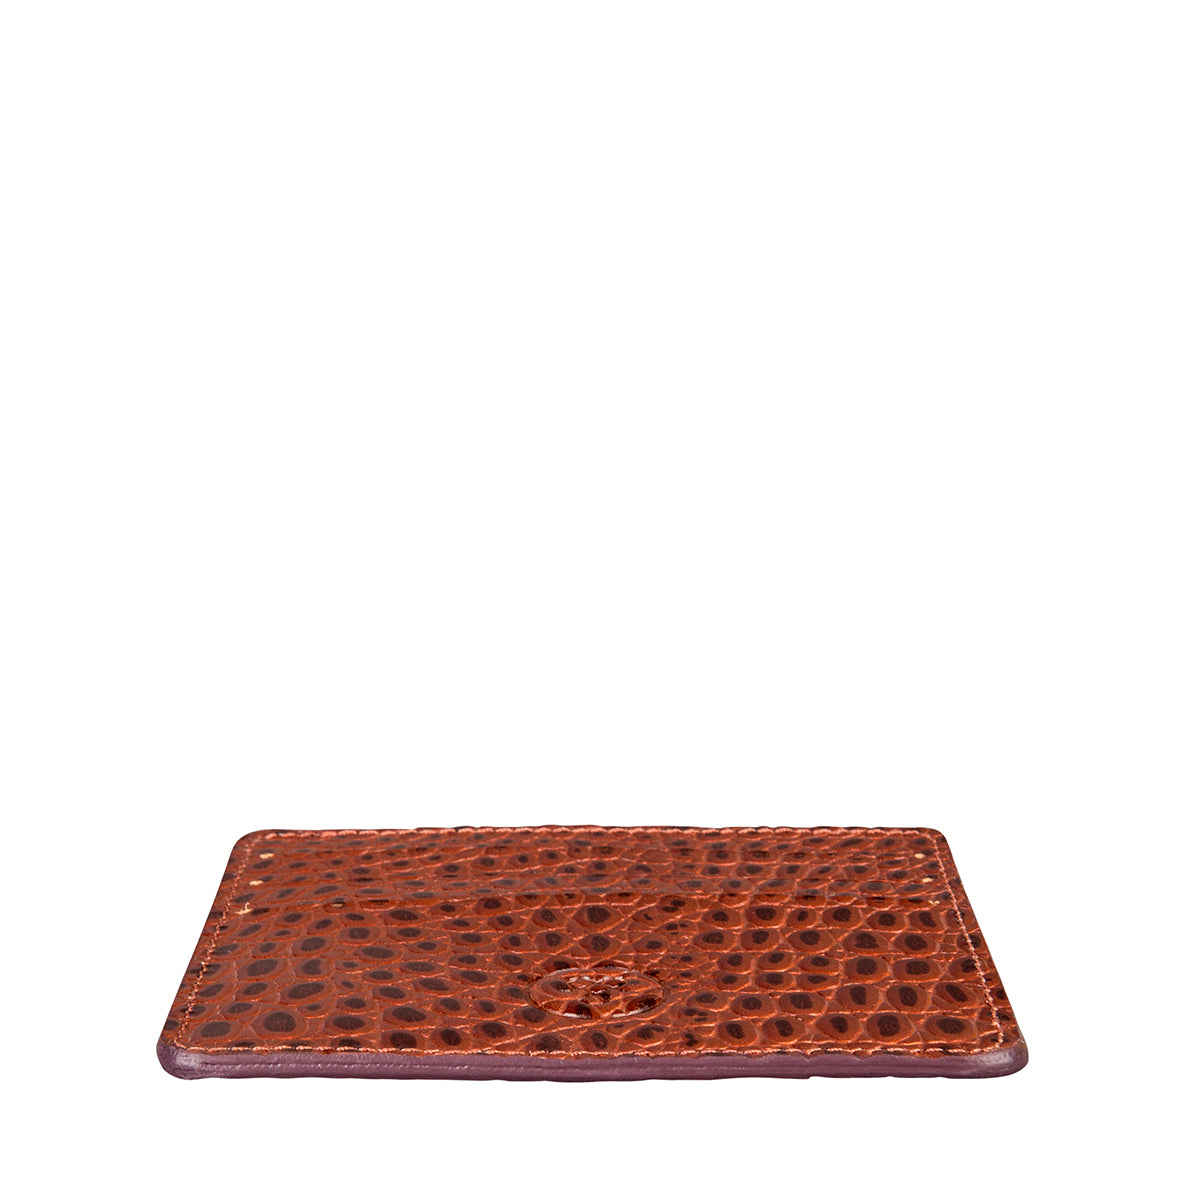 Image 4 of the 'Marco' Chestnut Mock Croc Veg-Tanned Leather Wallet